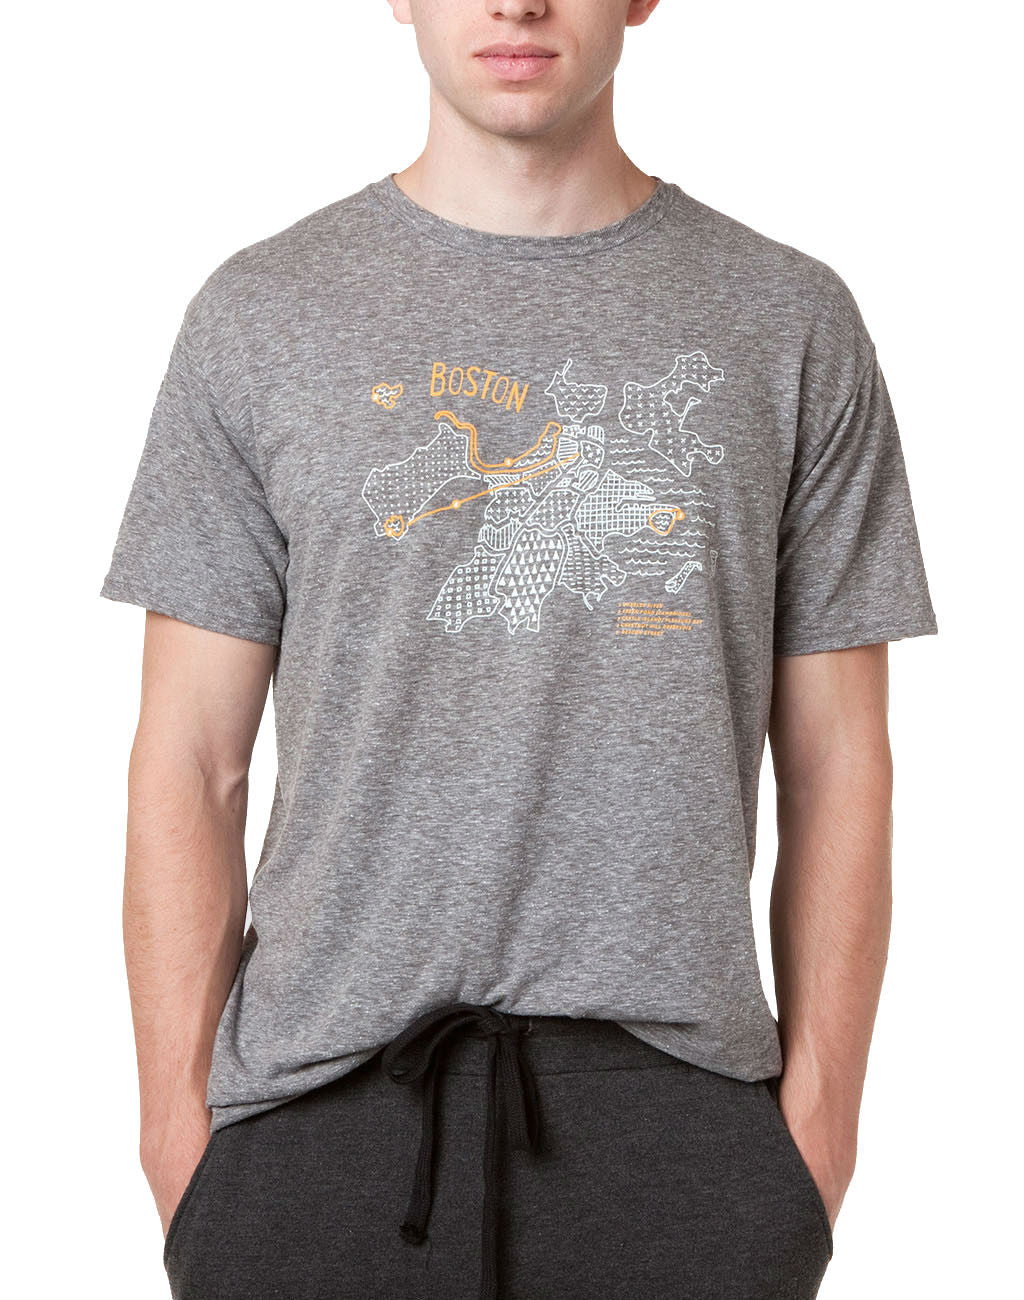 Runkeeper Boston is for Runners Tee (Men's)Heather Grey_master_image